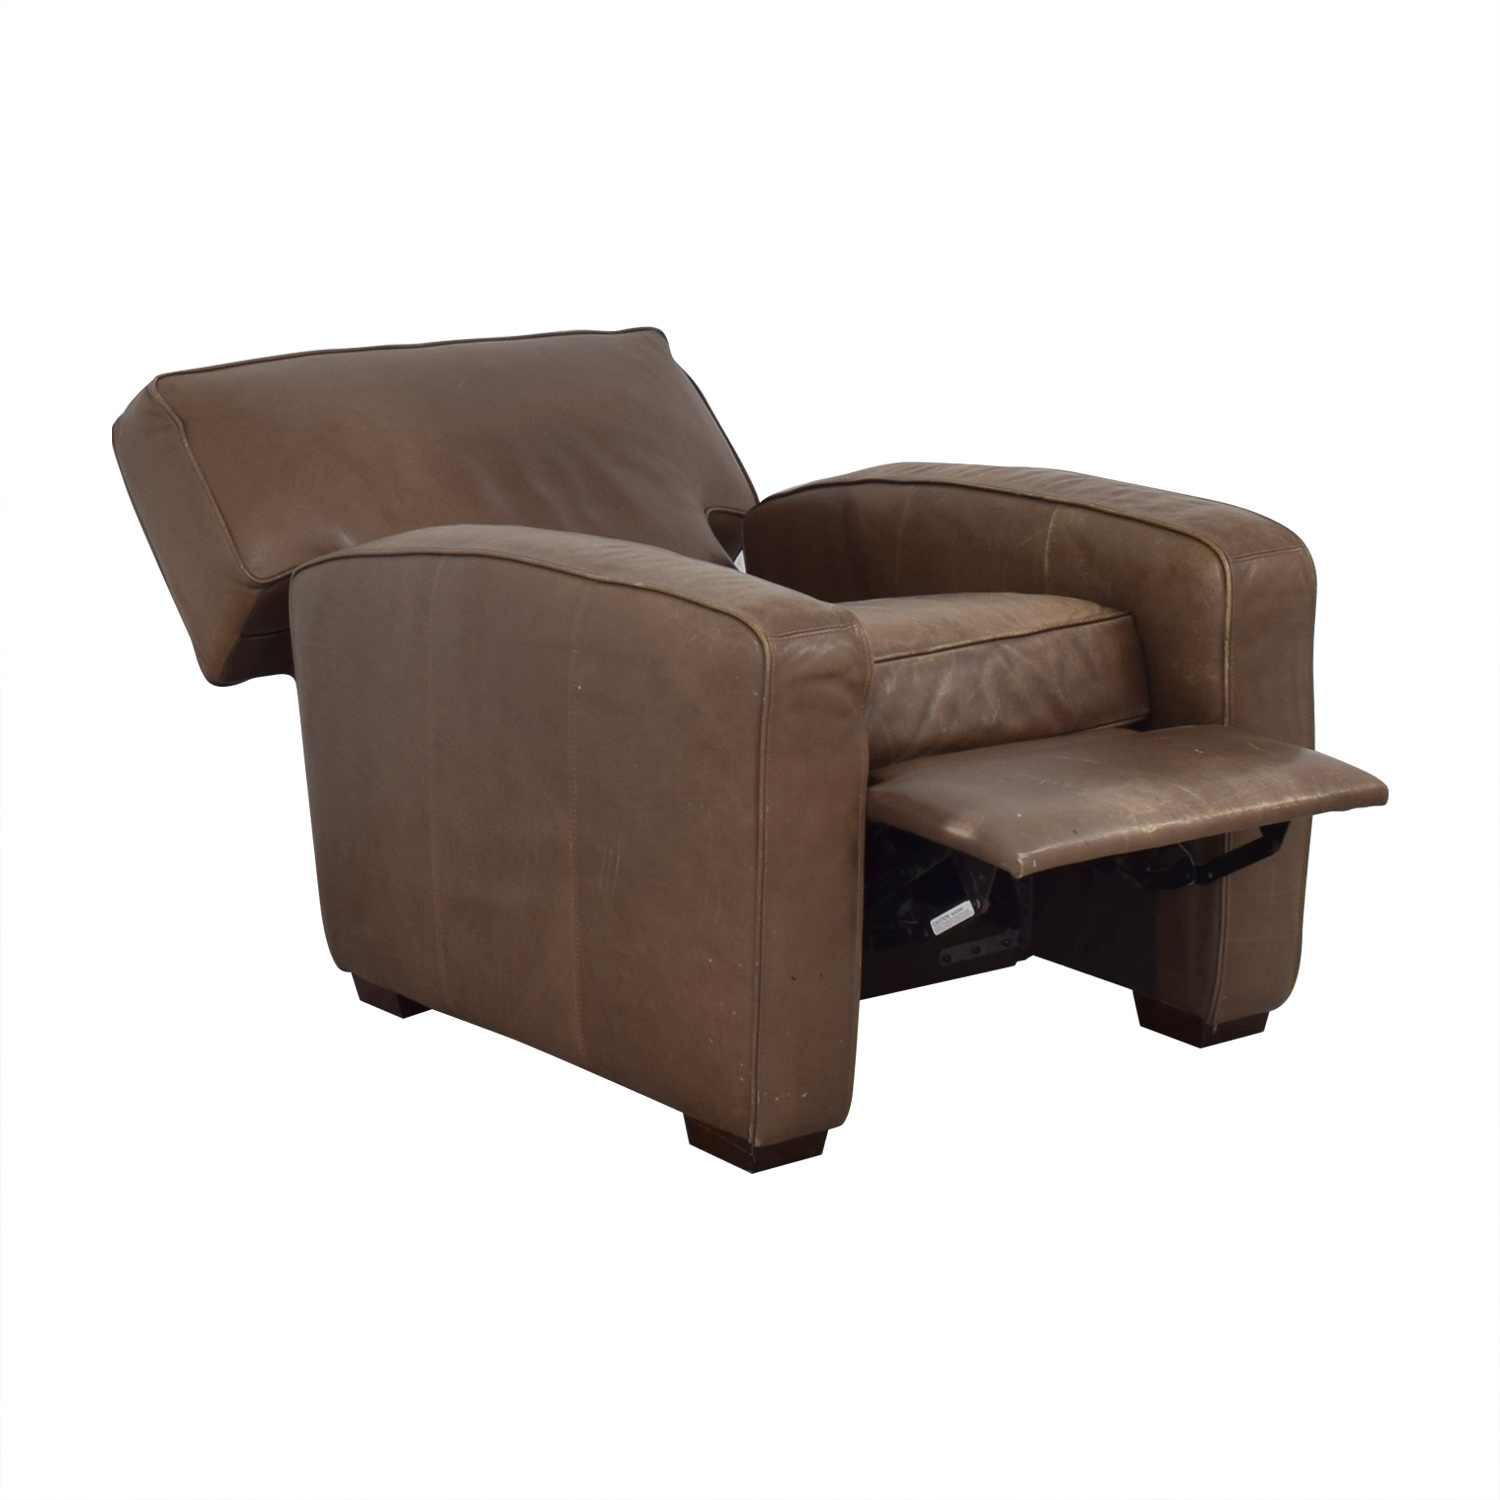 Crate & Barrel Leather Recliner Chair / Recliners